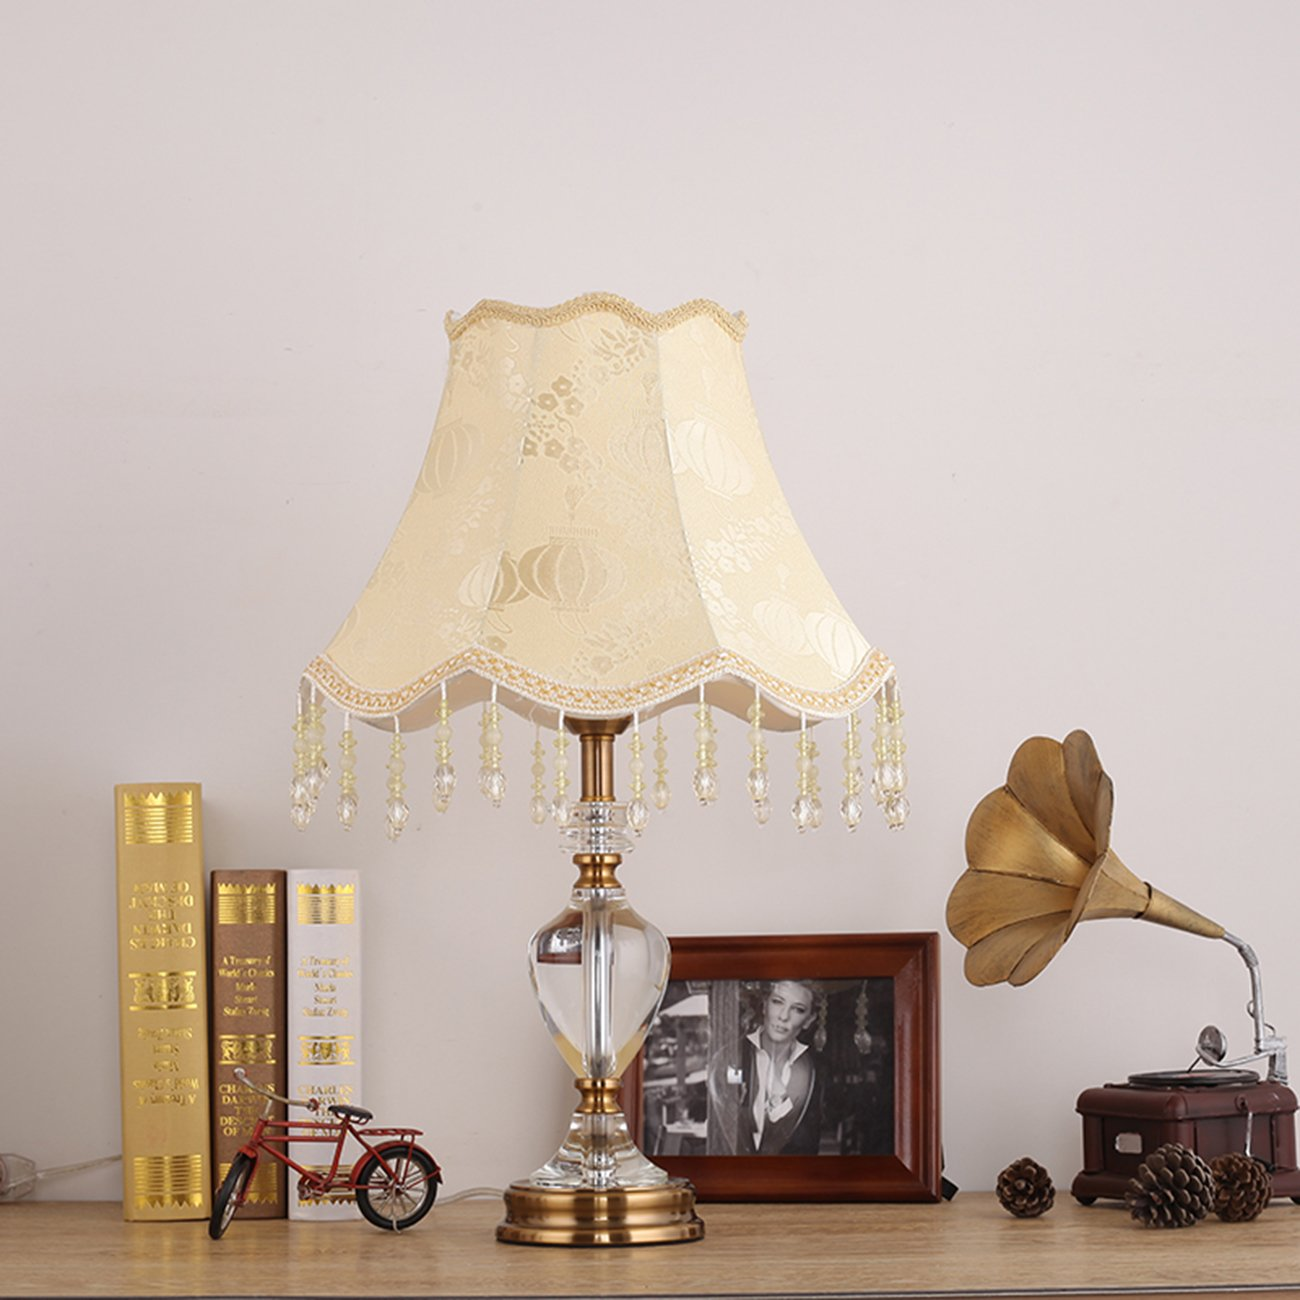 Garwarm Crystal Flower Table Lamps For Living Room Bedroom,3556CM/13.722 Inch WH